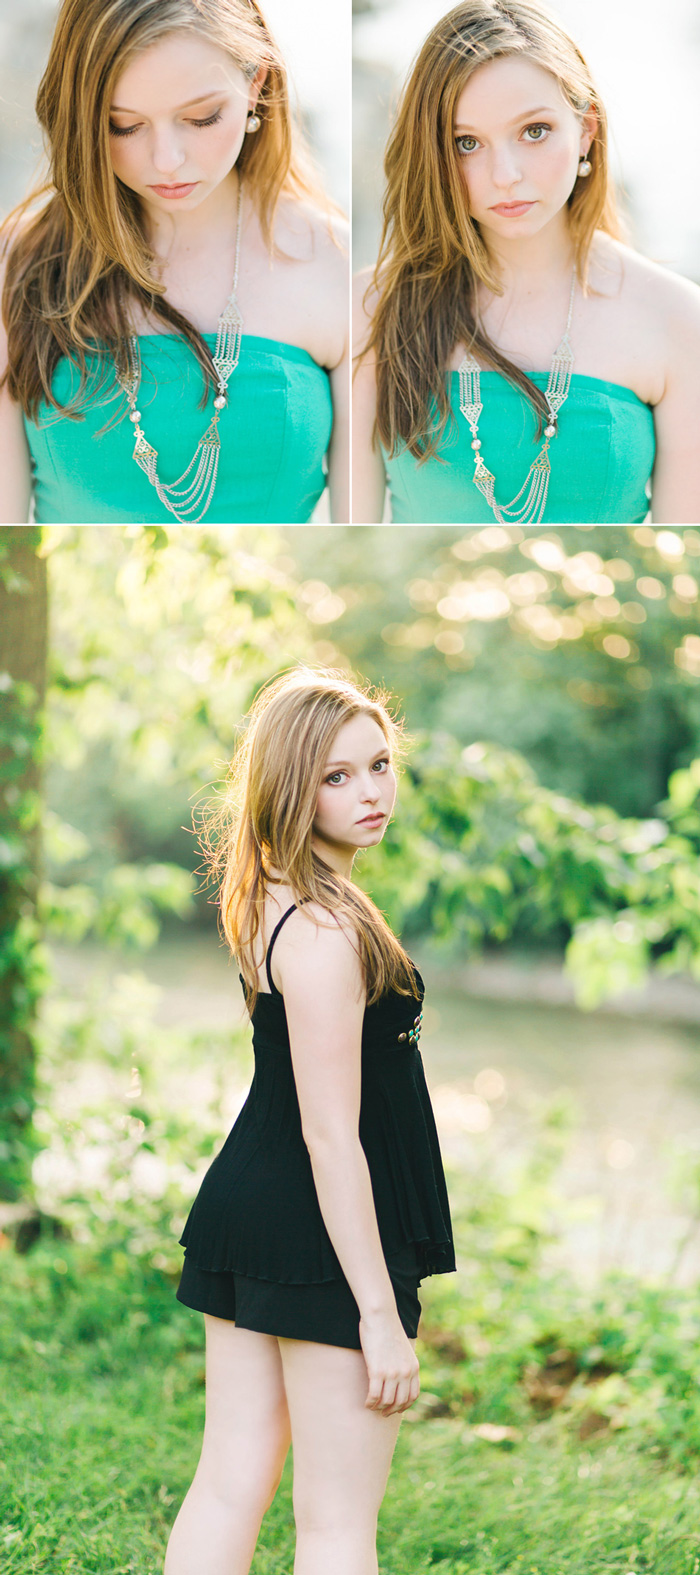 Lux Senior Photography - Dayton Ohio Fine Art Senior Portraits